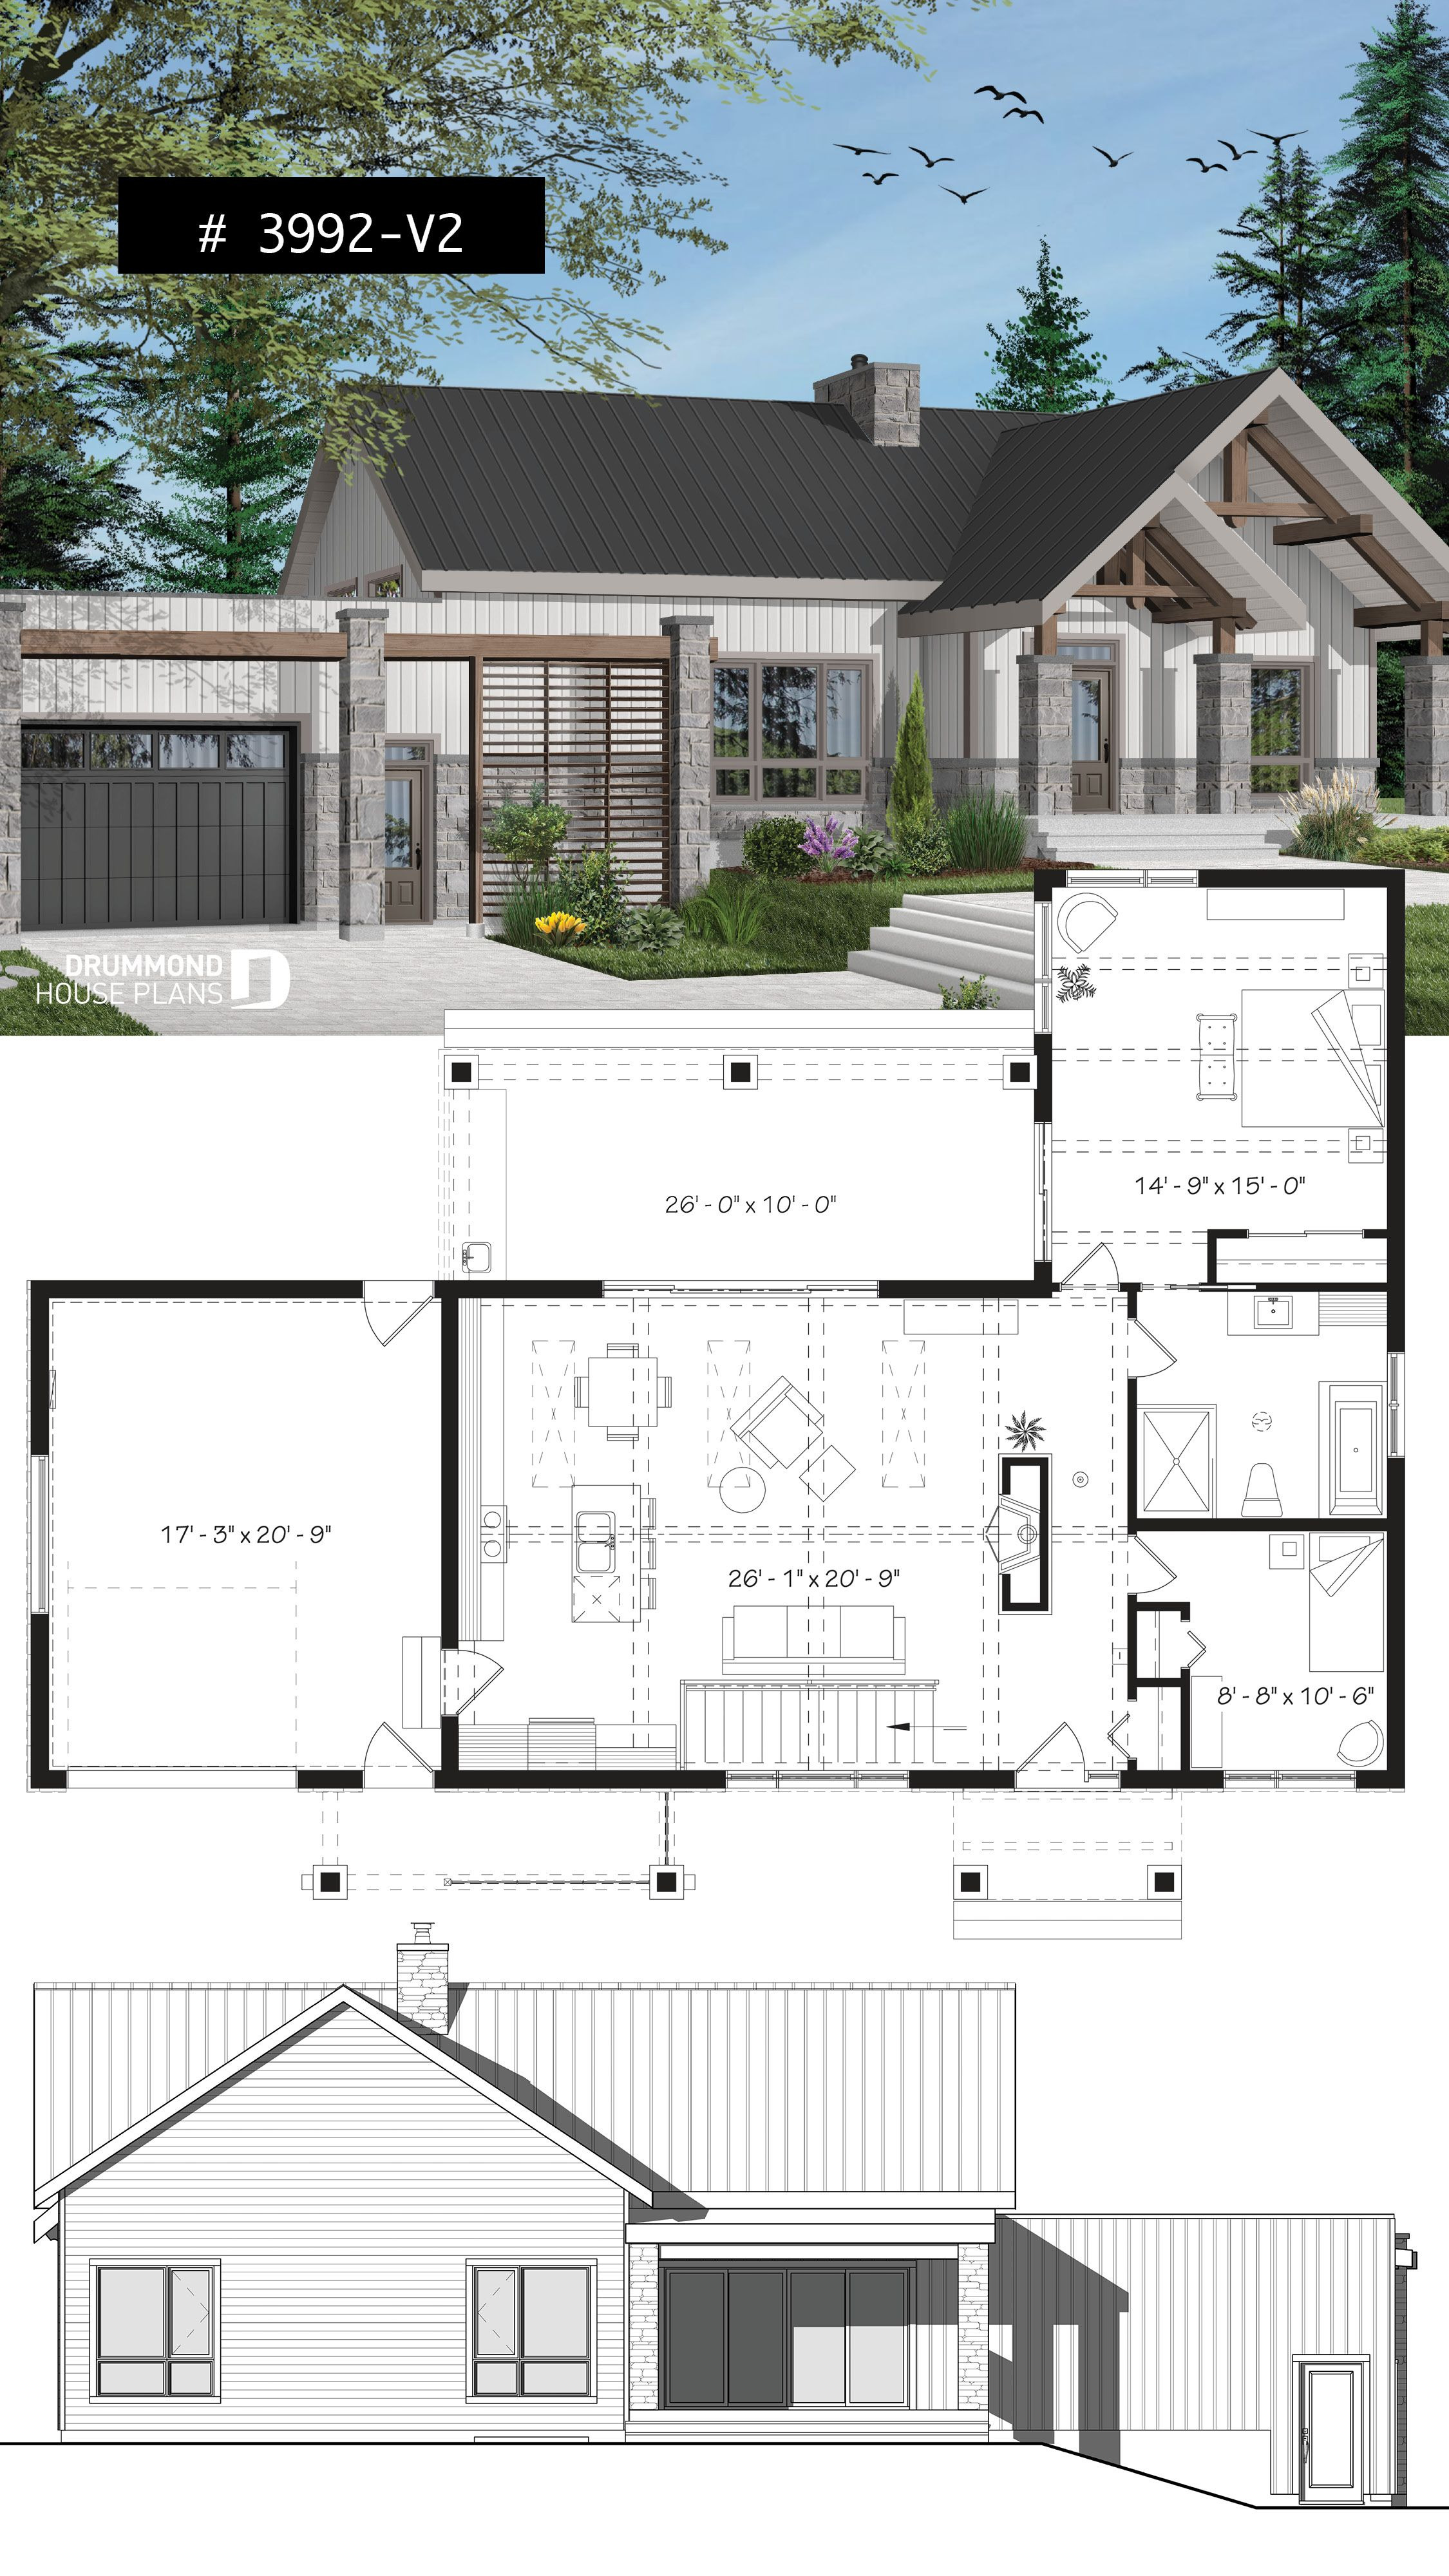 Small House Plans with Garage Luxury House Plan Olympe 3 No 3992 V2